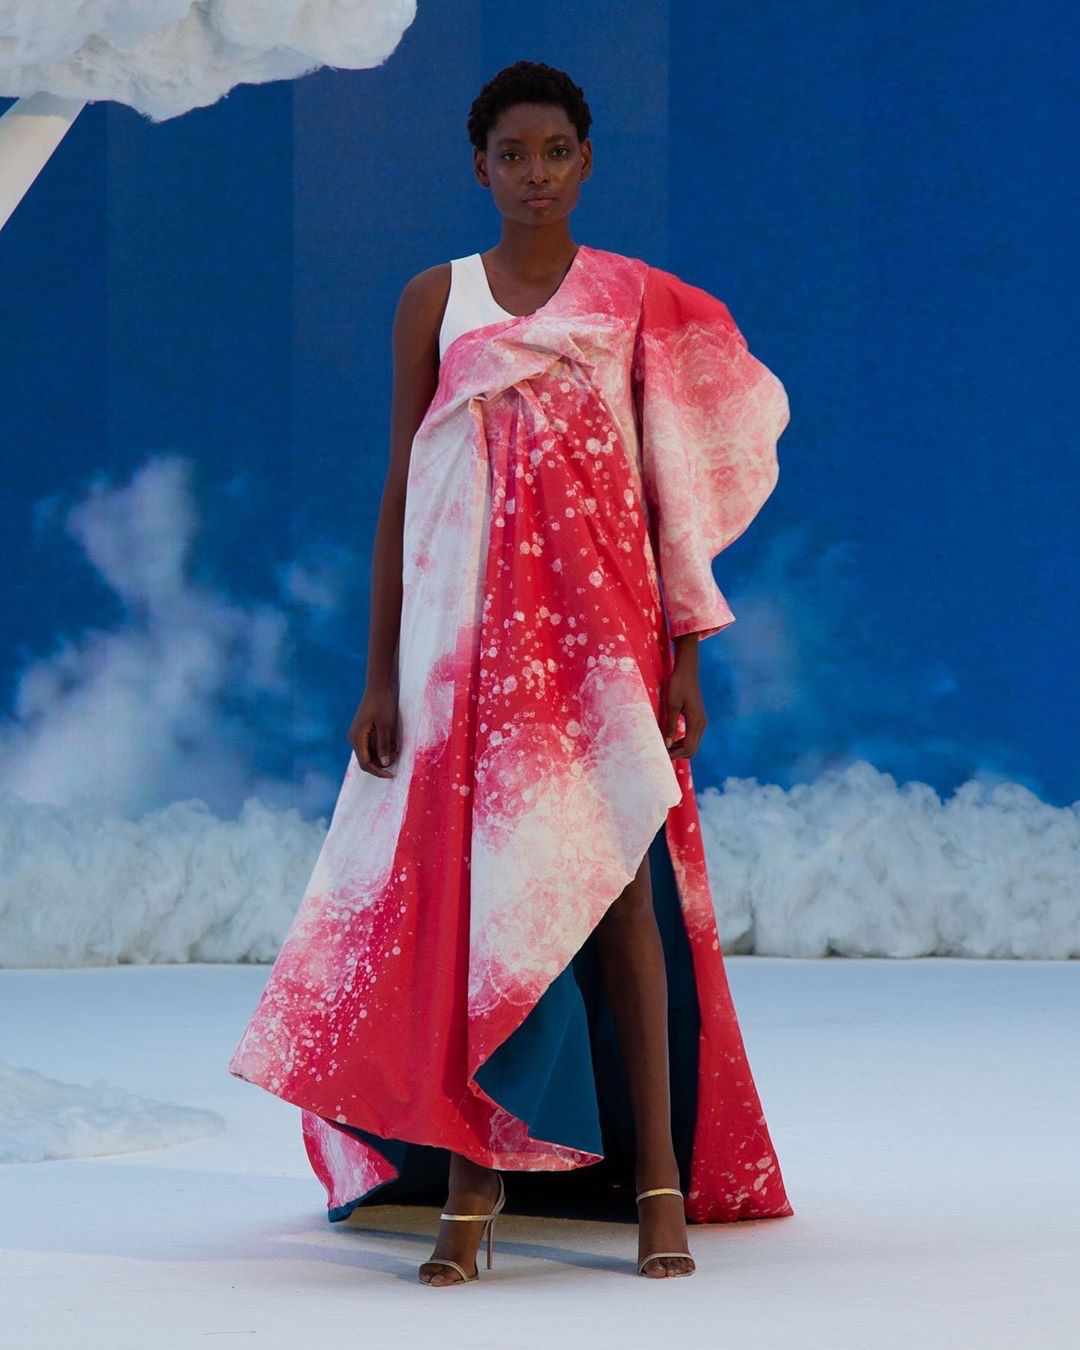 Red and White Runway look by Nguyen from 2020 Supima